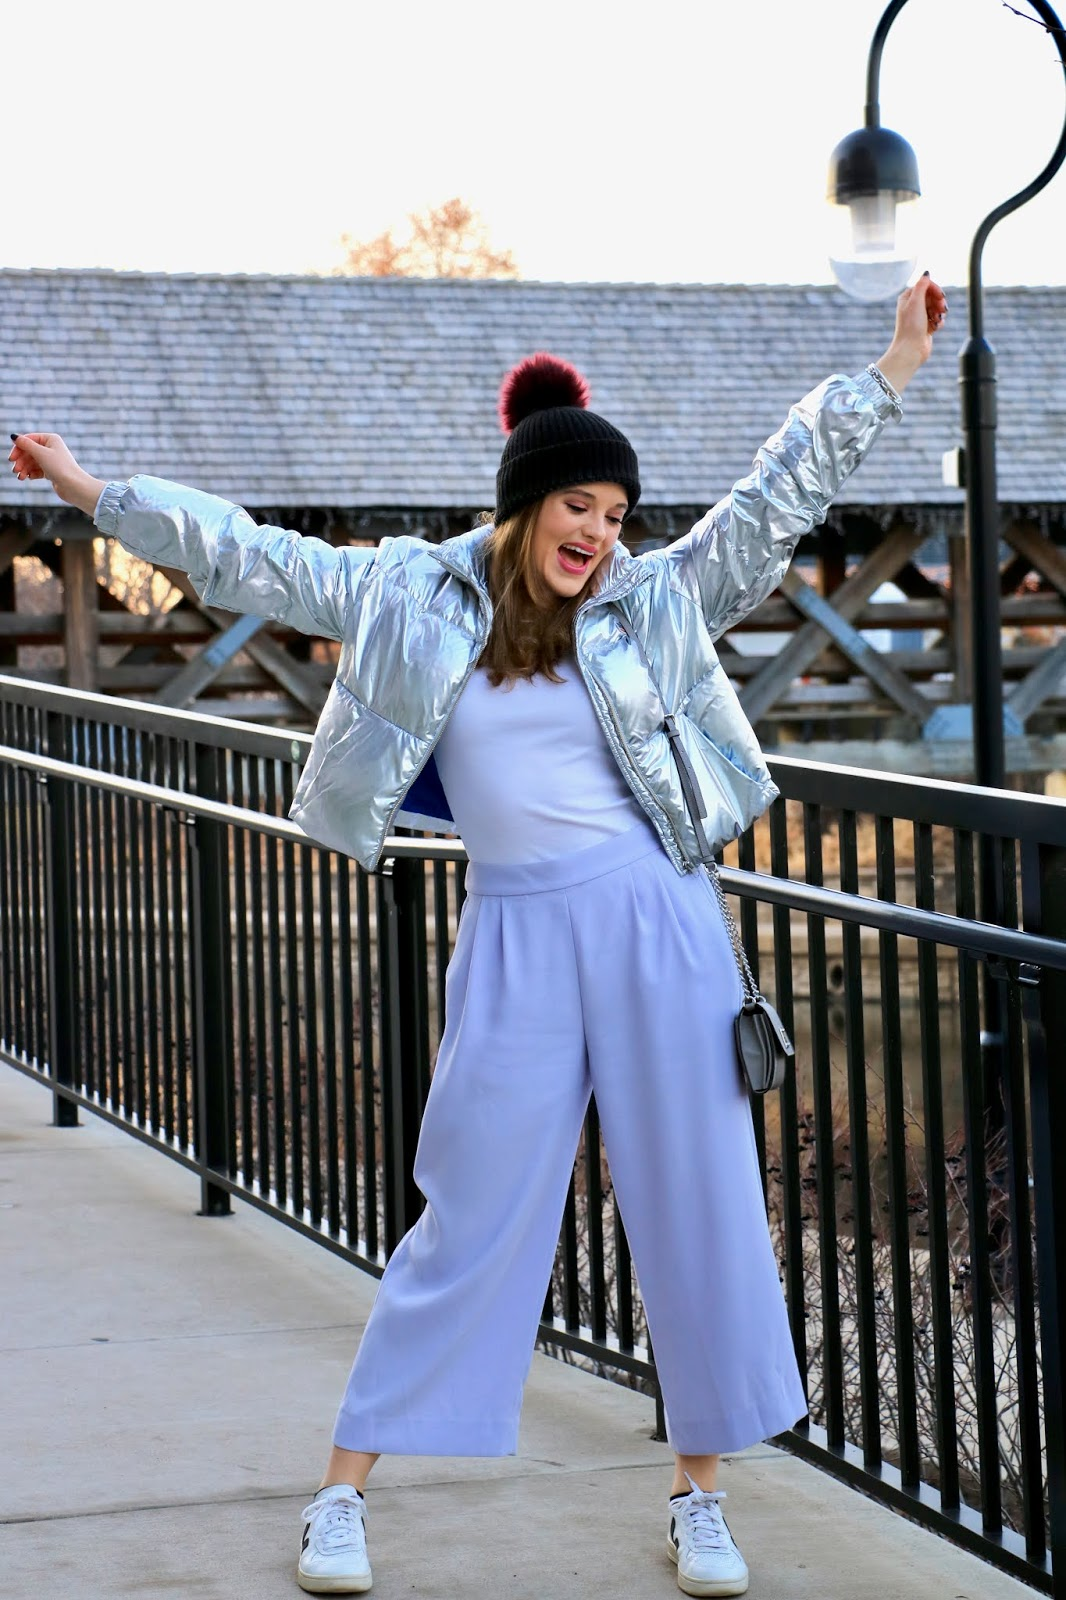 Nyc fashion blogger Kathleen Harper showing how to wear a white turtleneck.